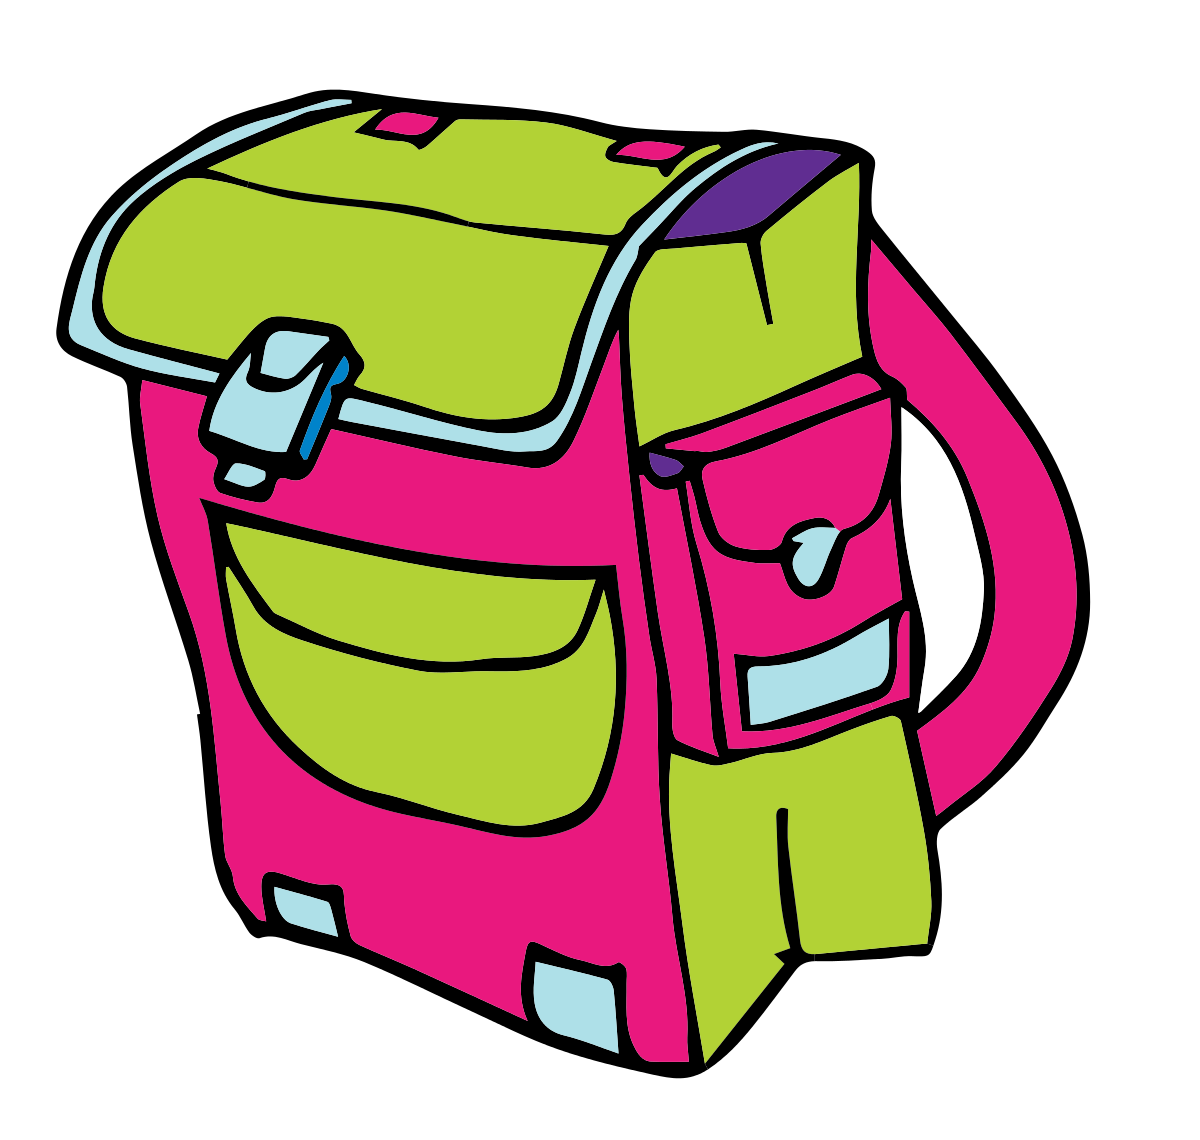 Bags clipart lunch. Free school bag download